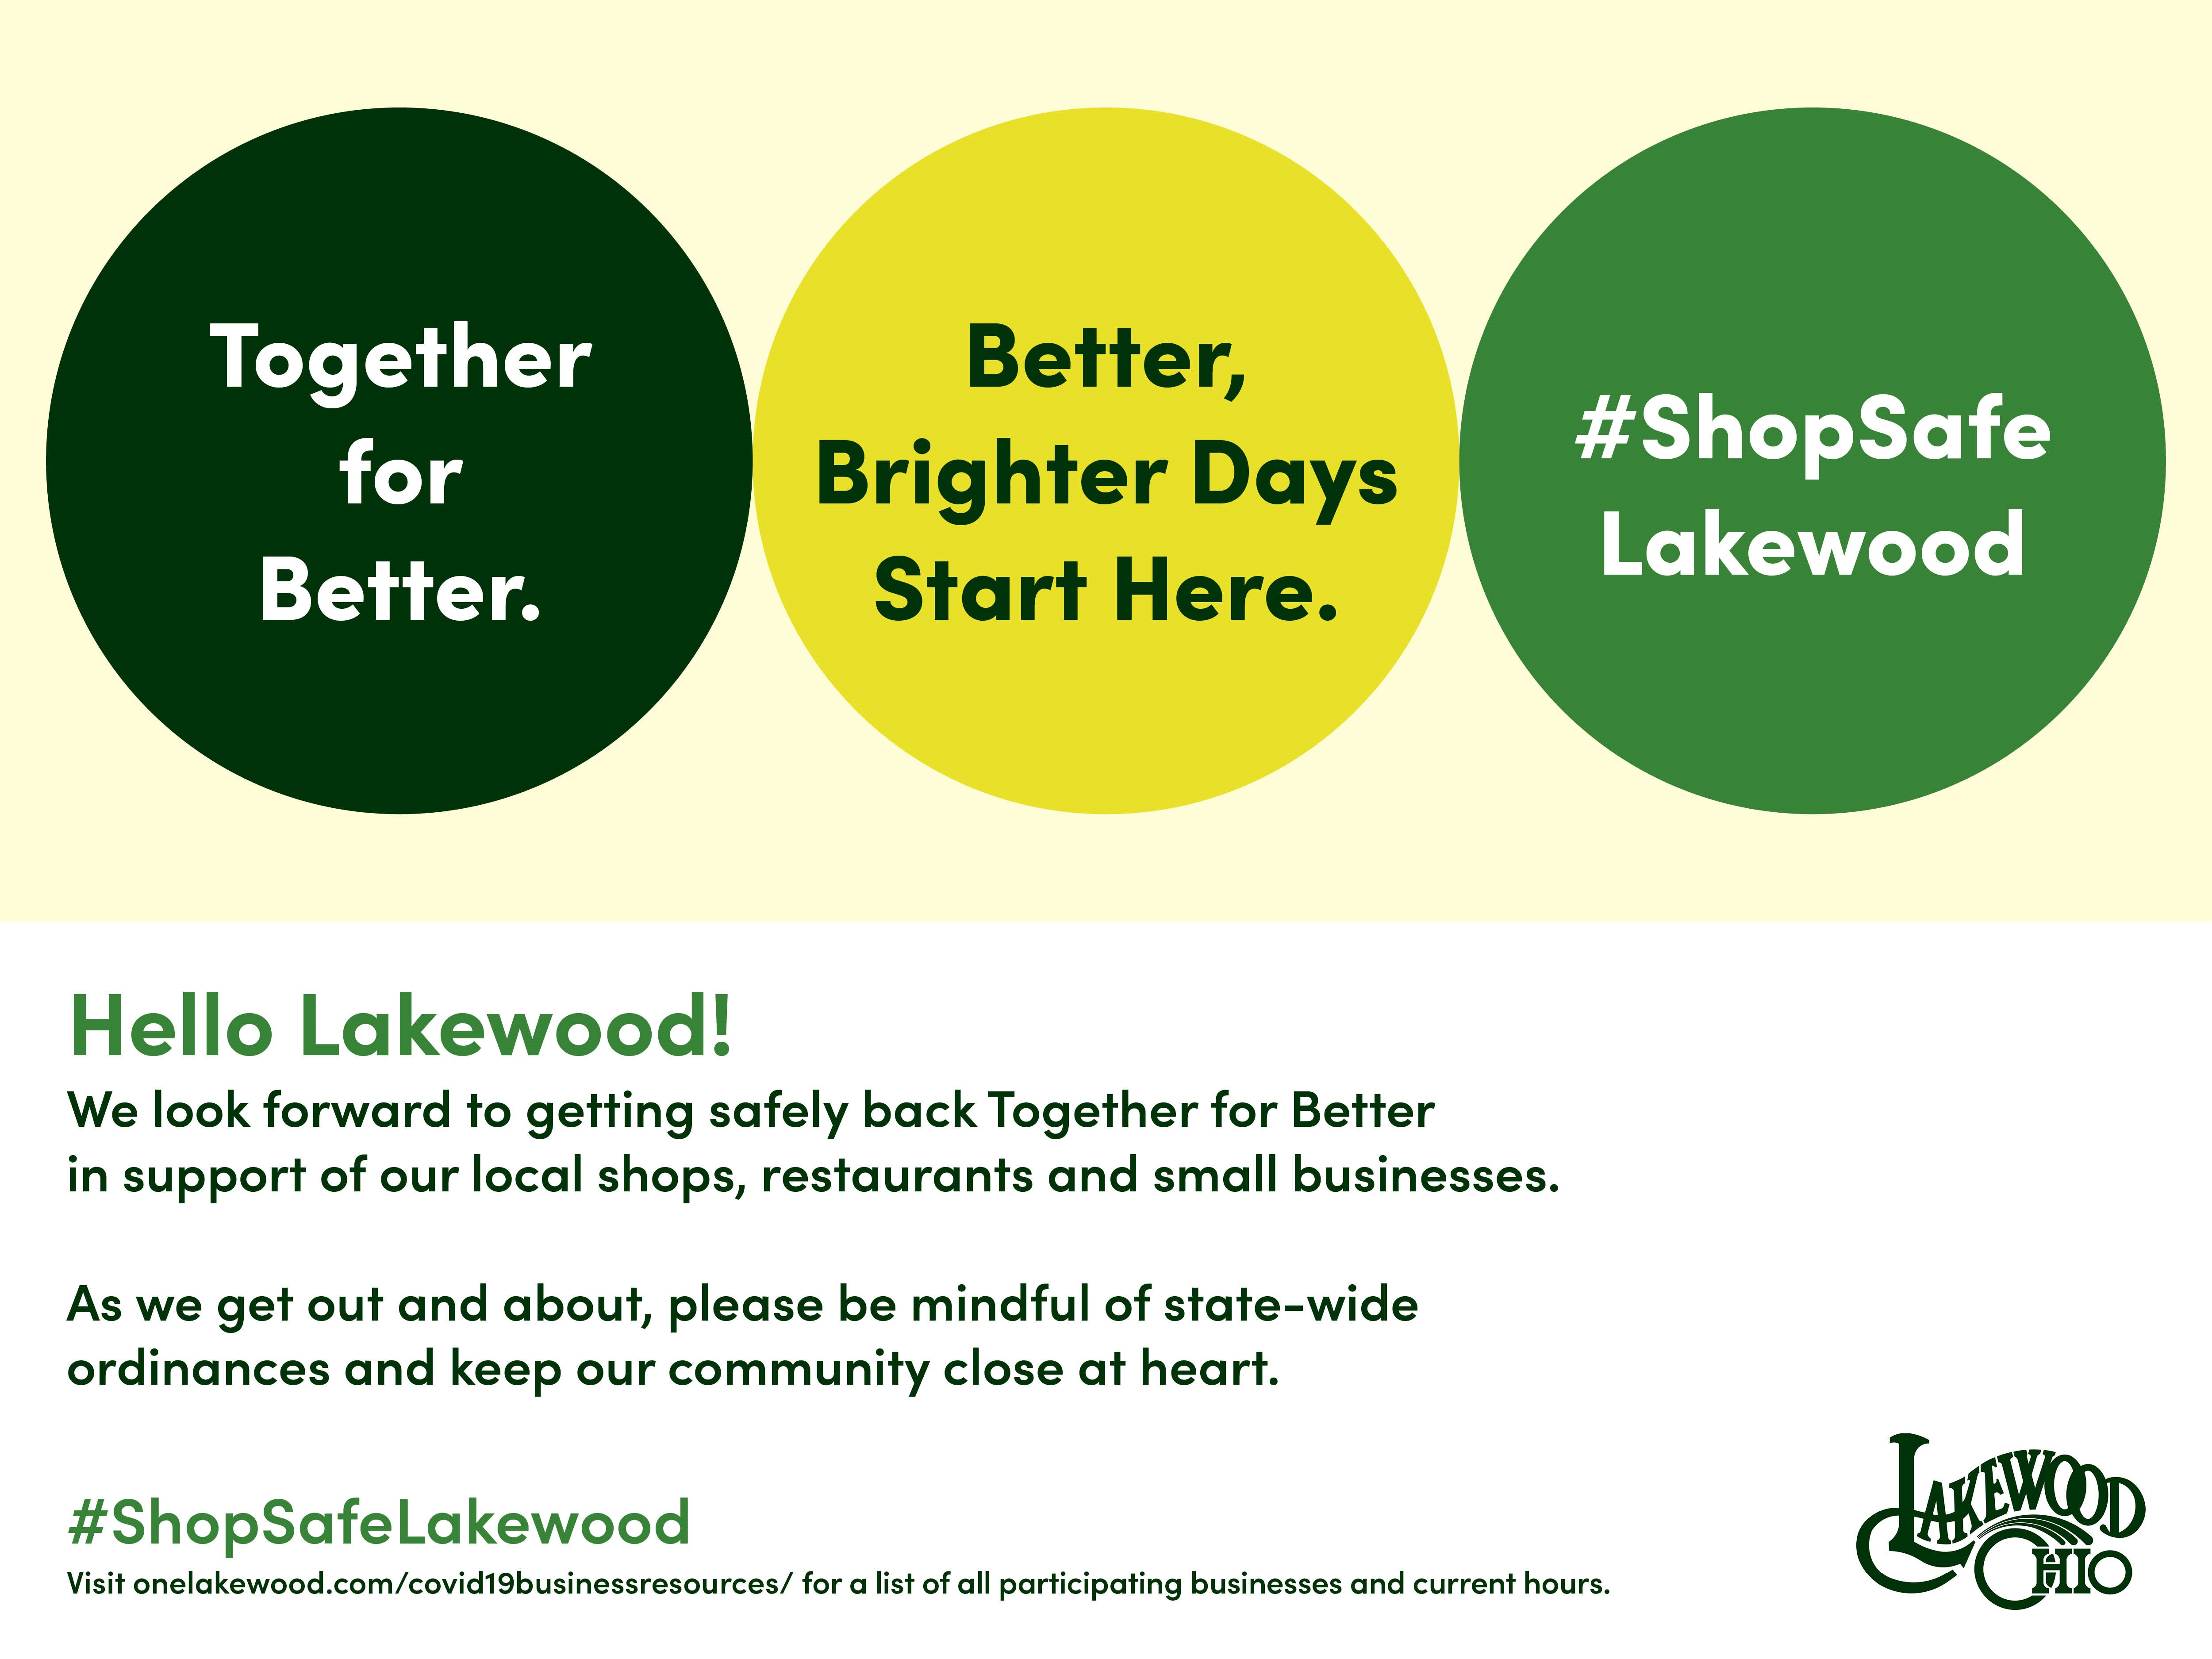 Covid 19 Resources For Lakewood Businesses The City Of Lakewood Ohio